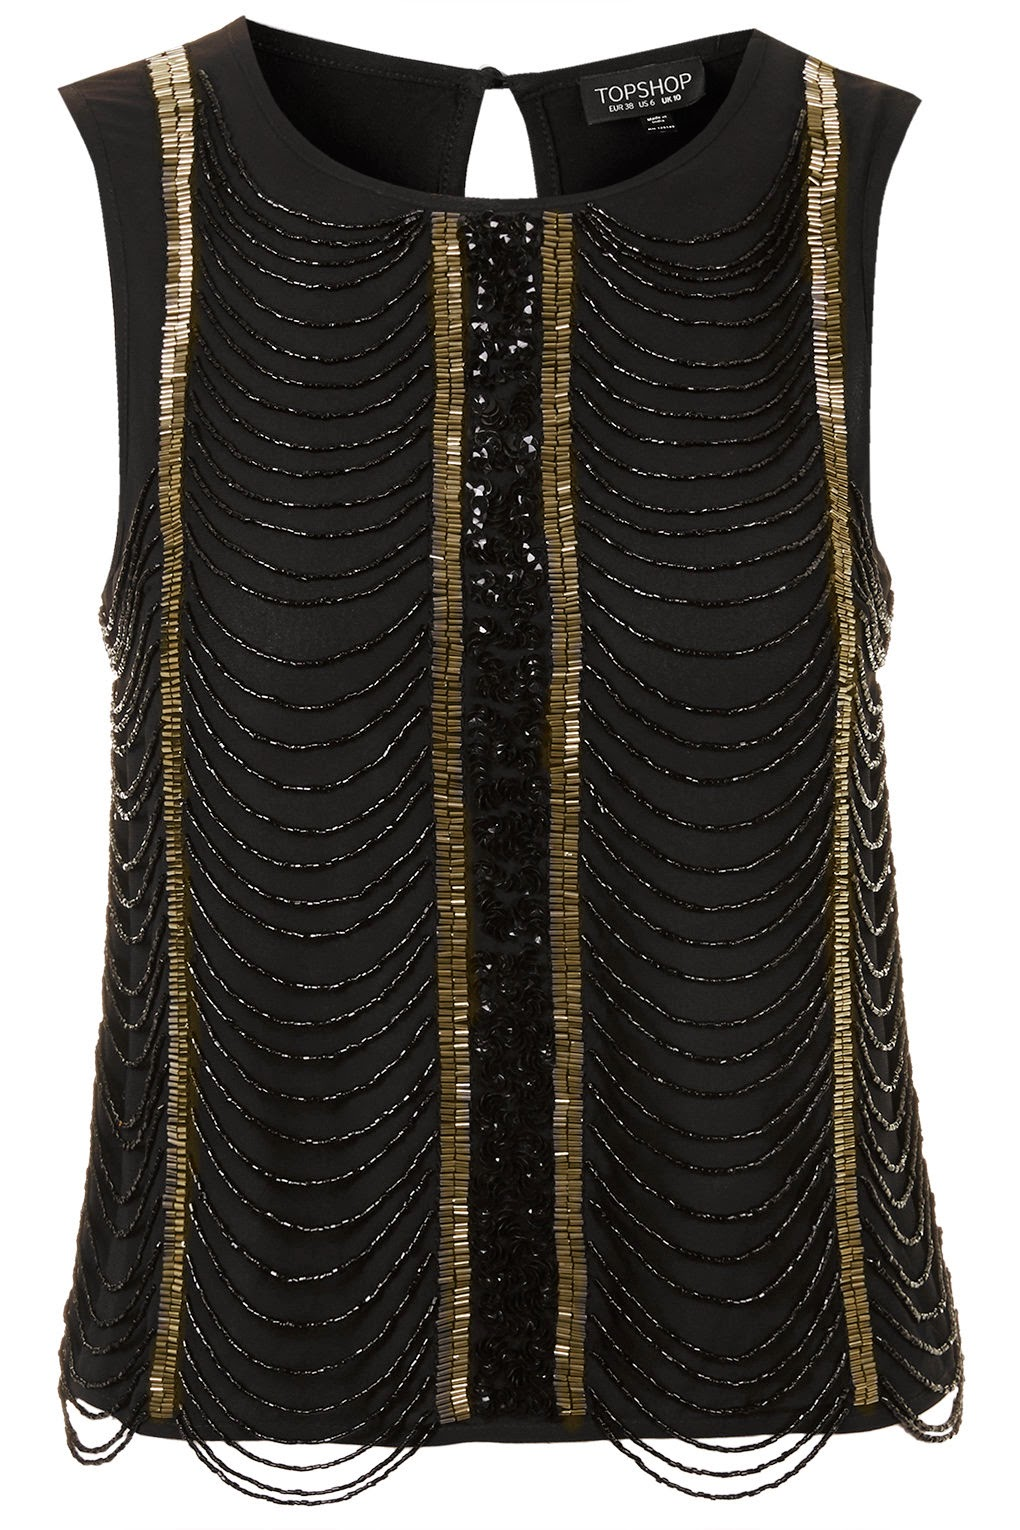 black and gold top